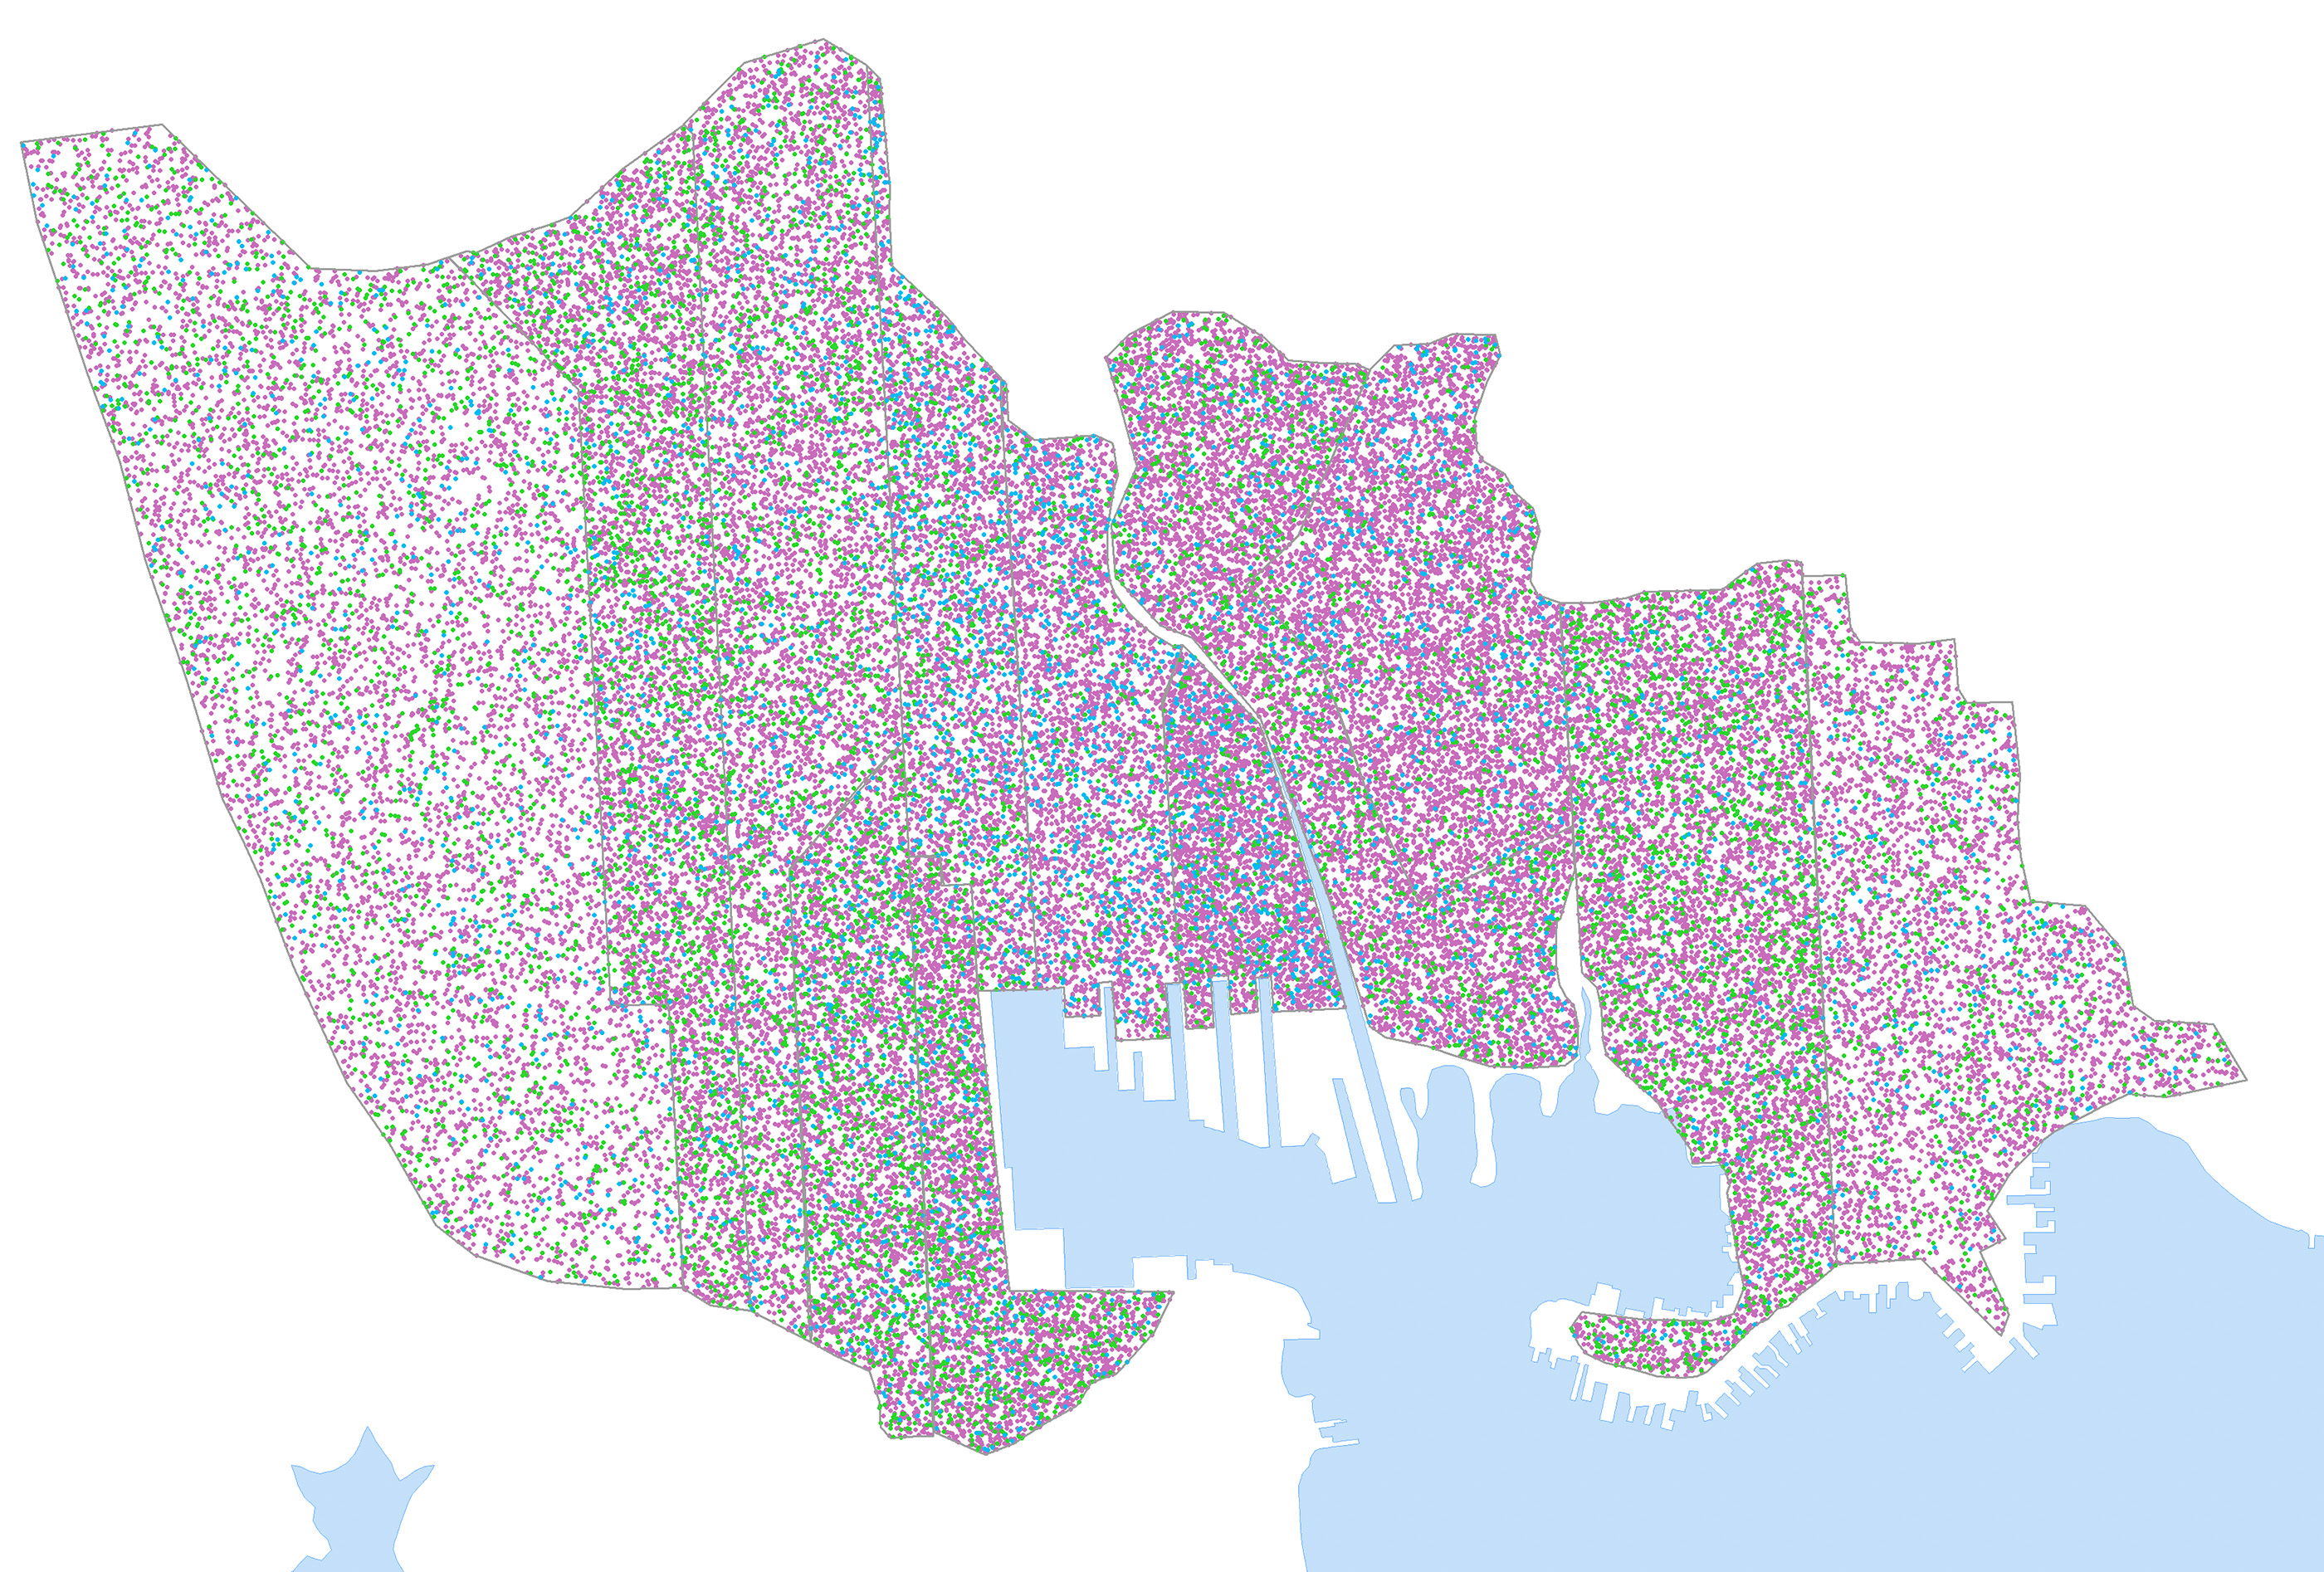 Dot density map showing 1820 population by ward